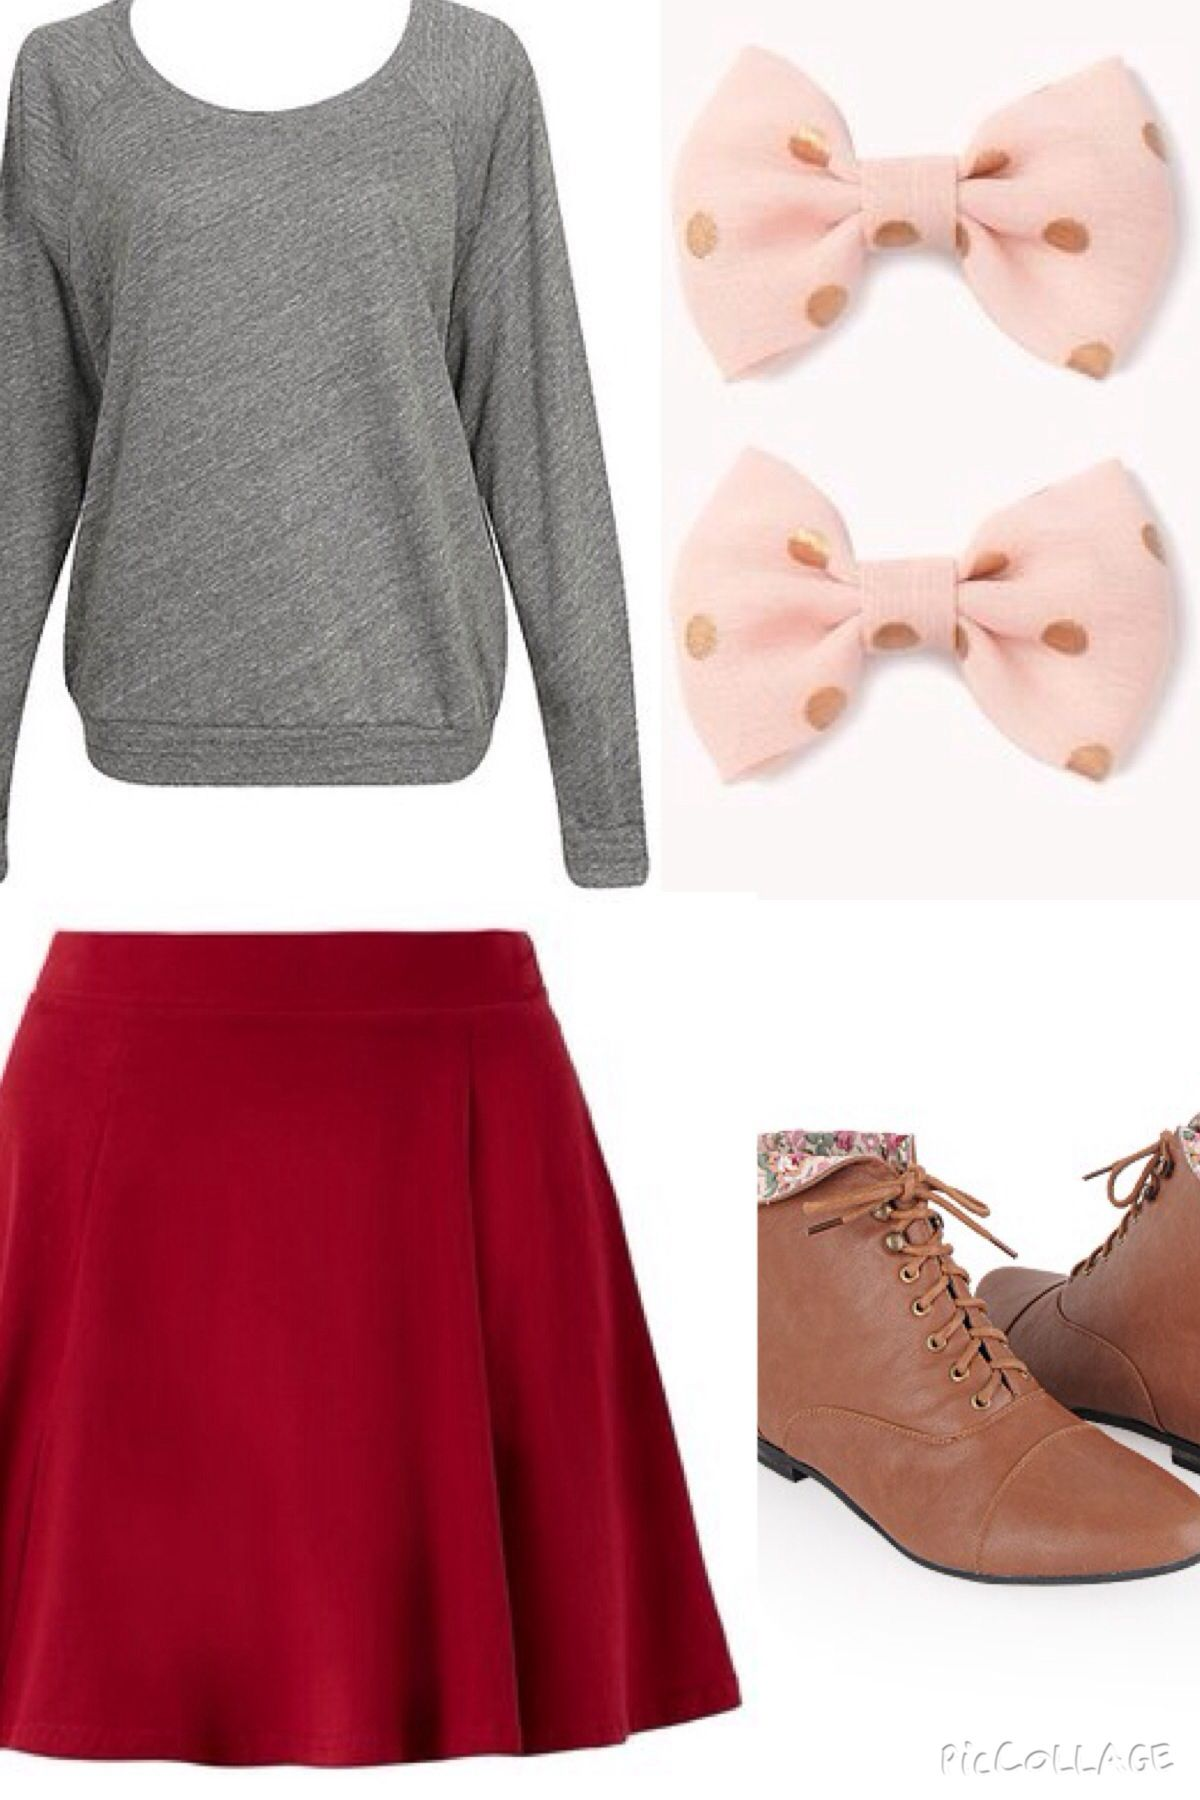 This is the perfect outfit for the fall time. When I think of fall clothes, I think of some what dark colors. And this just describes the perfect outfit for the fall!